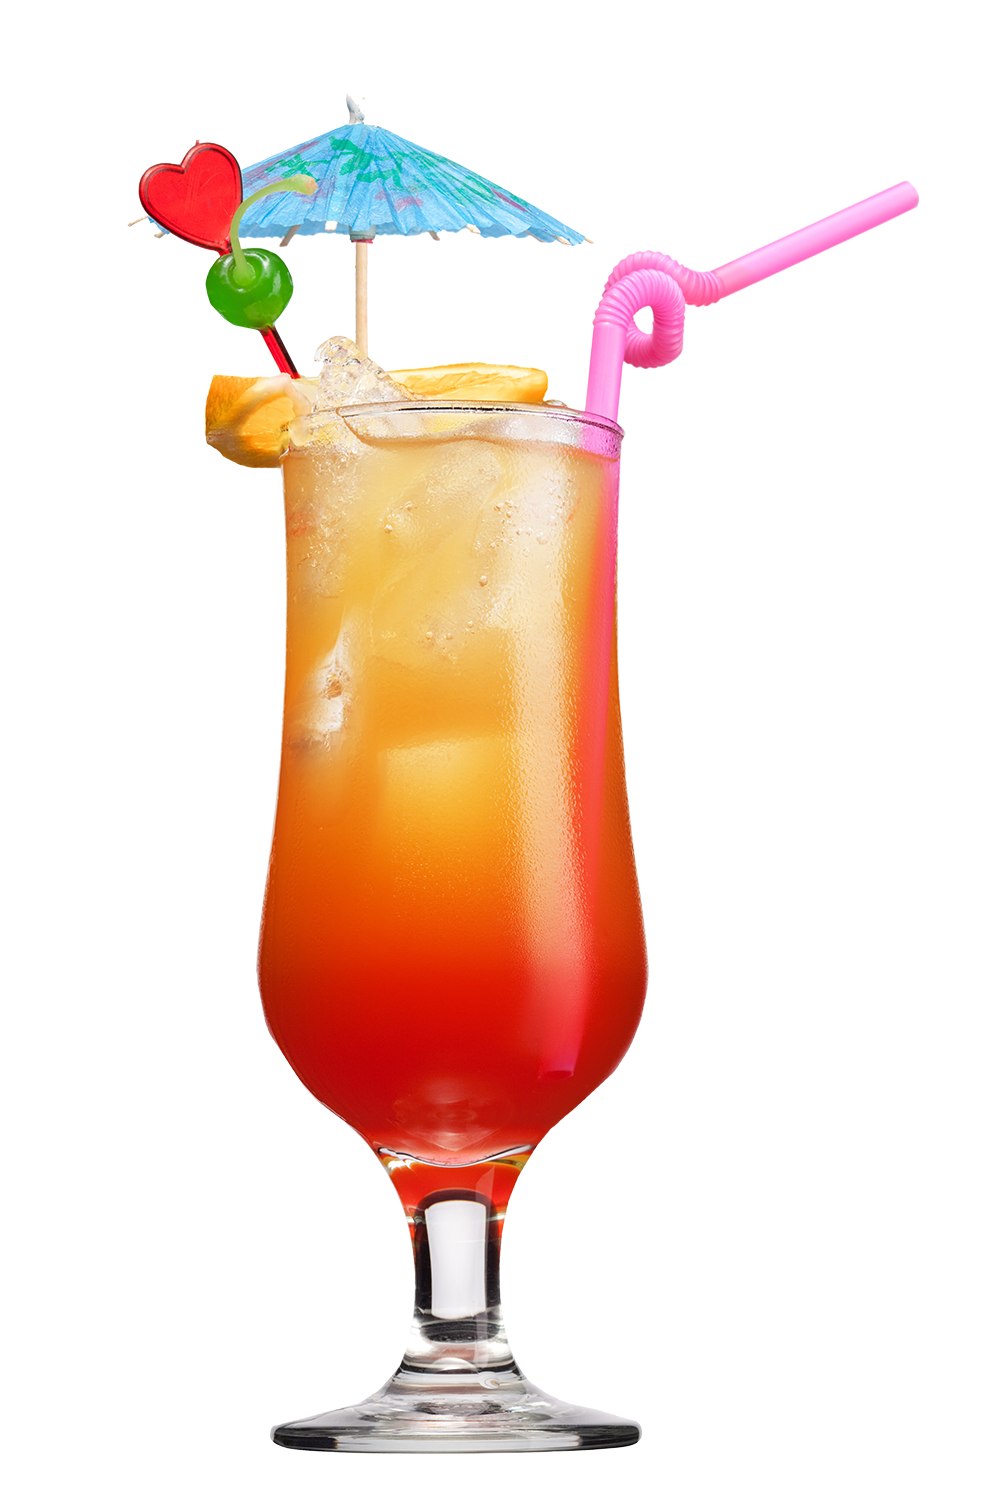 Drink Png 12 PNG Image - Drinks PNG